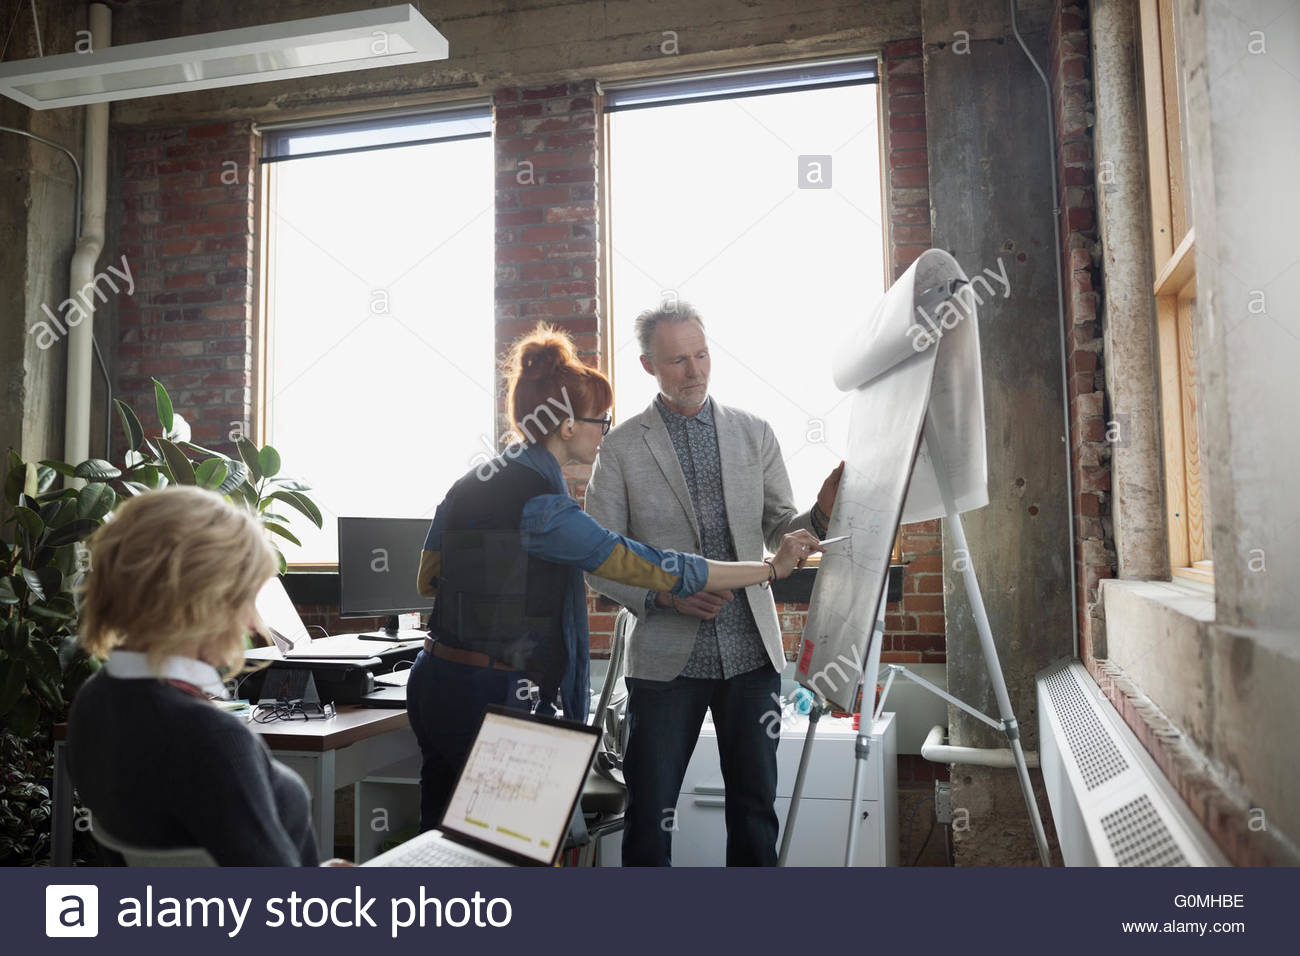 Business people brainstorming at flipchart in office - Stock Image